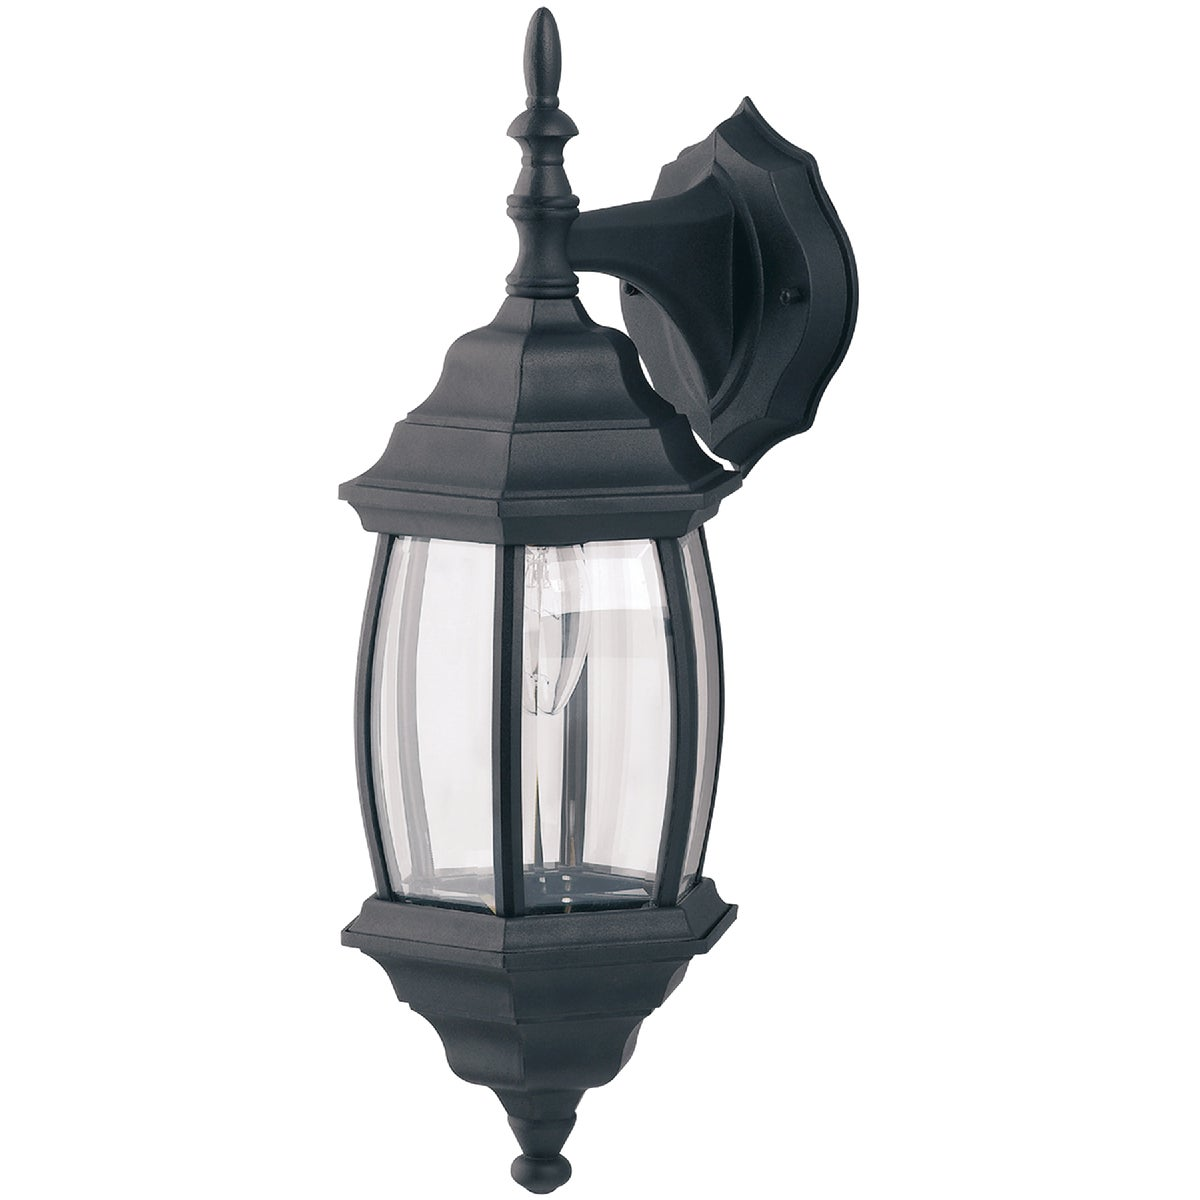 BLACK OUTDOOR FIXTURE - IOL73TBK by Canarm Gs